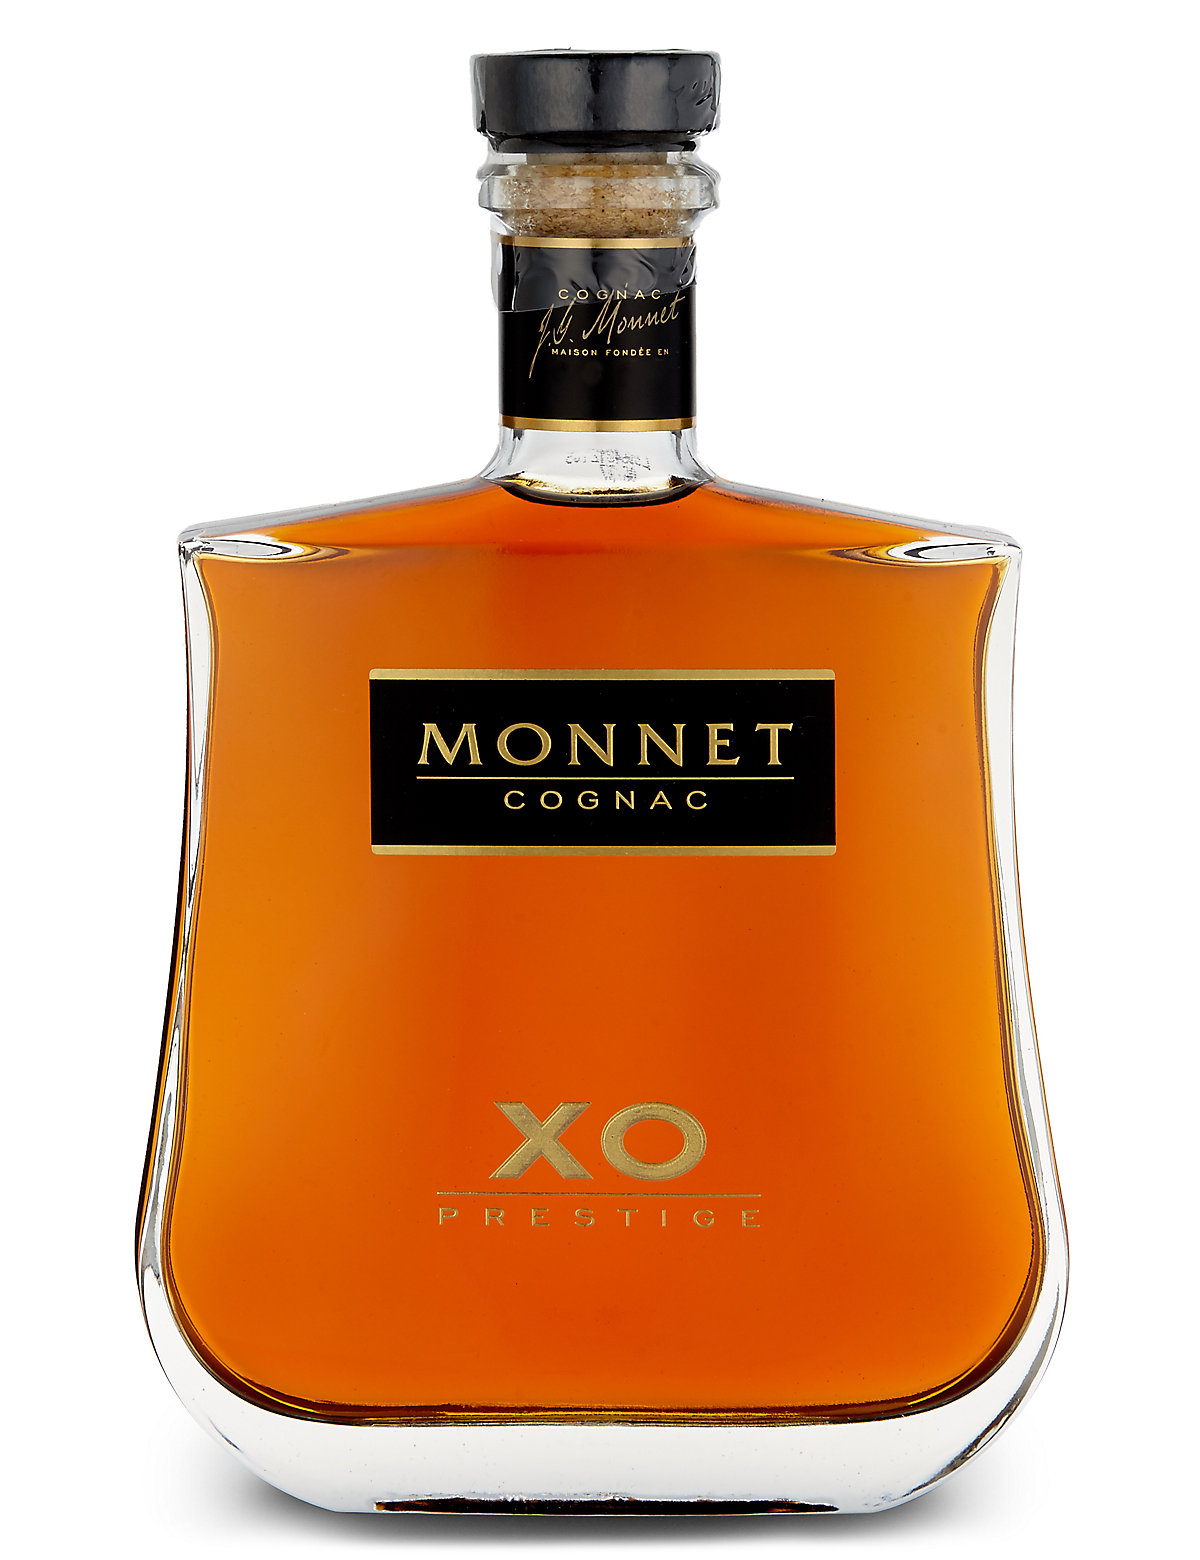 Xo Monnet Cognac - Single Bottle